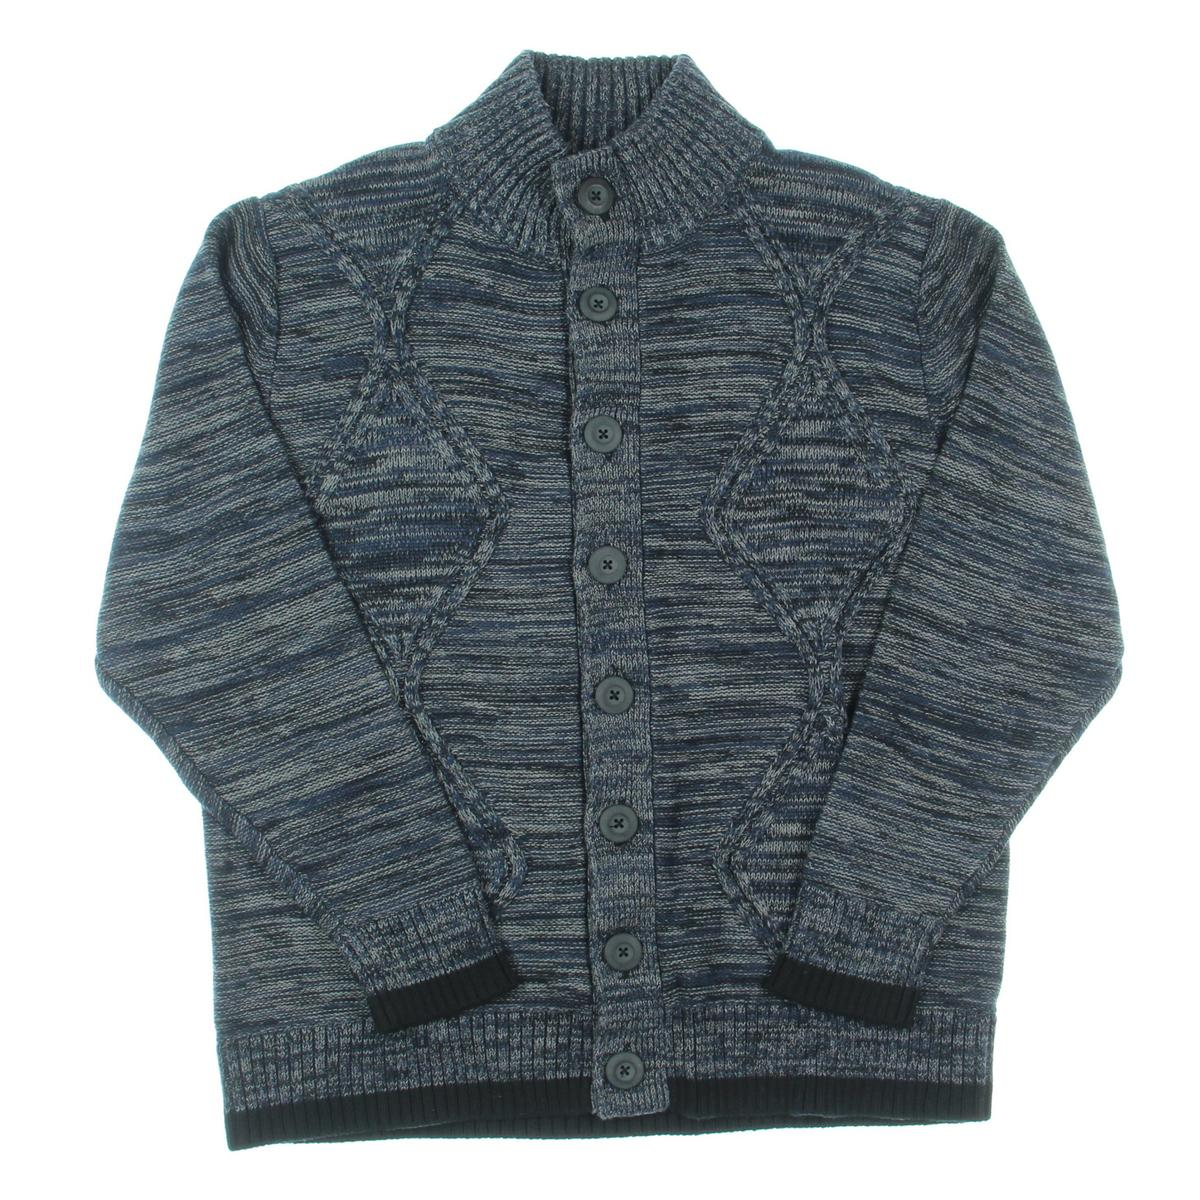 Find great deals on eBay for mens chunky sweater. Shop with confidence.